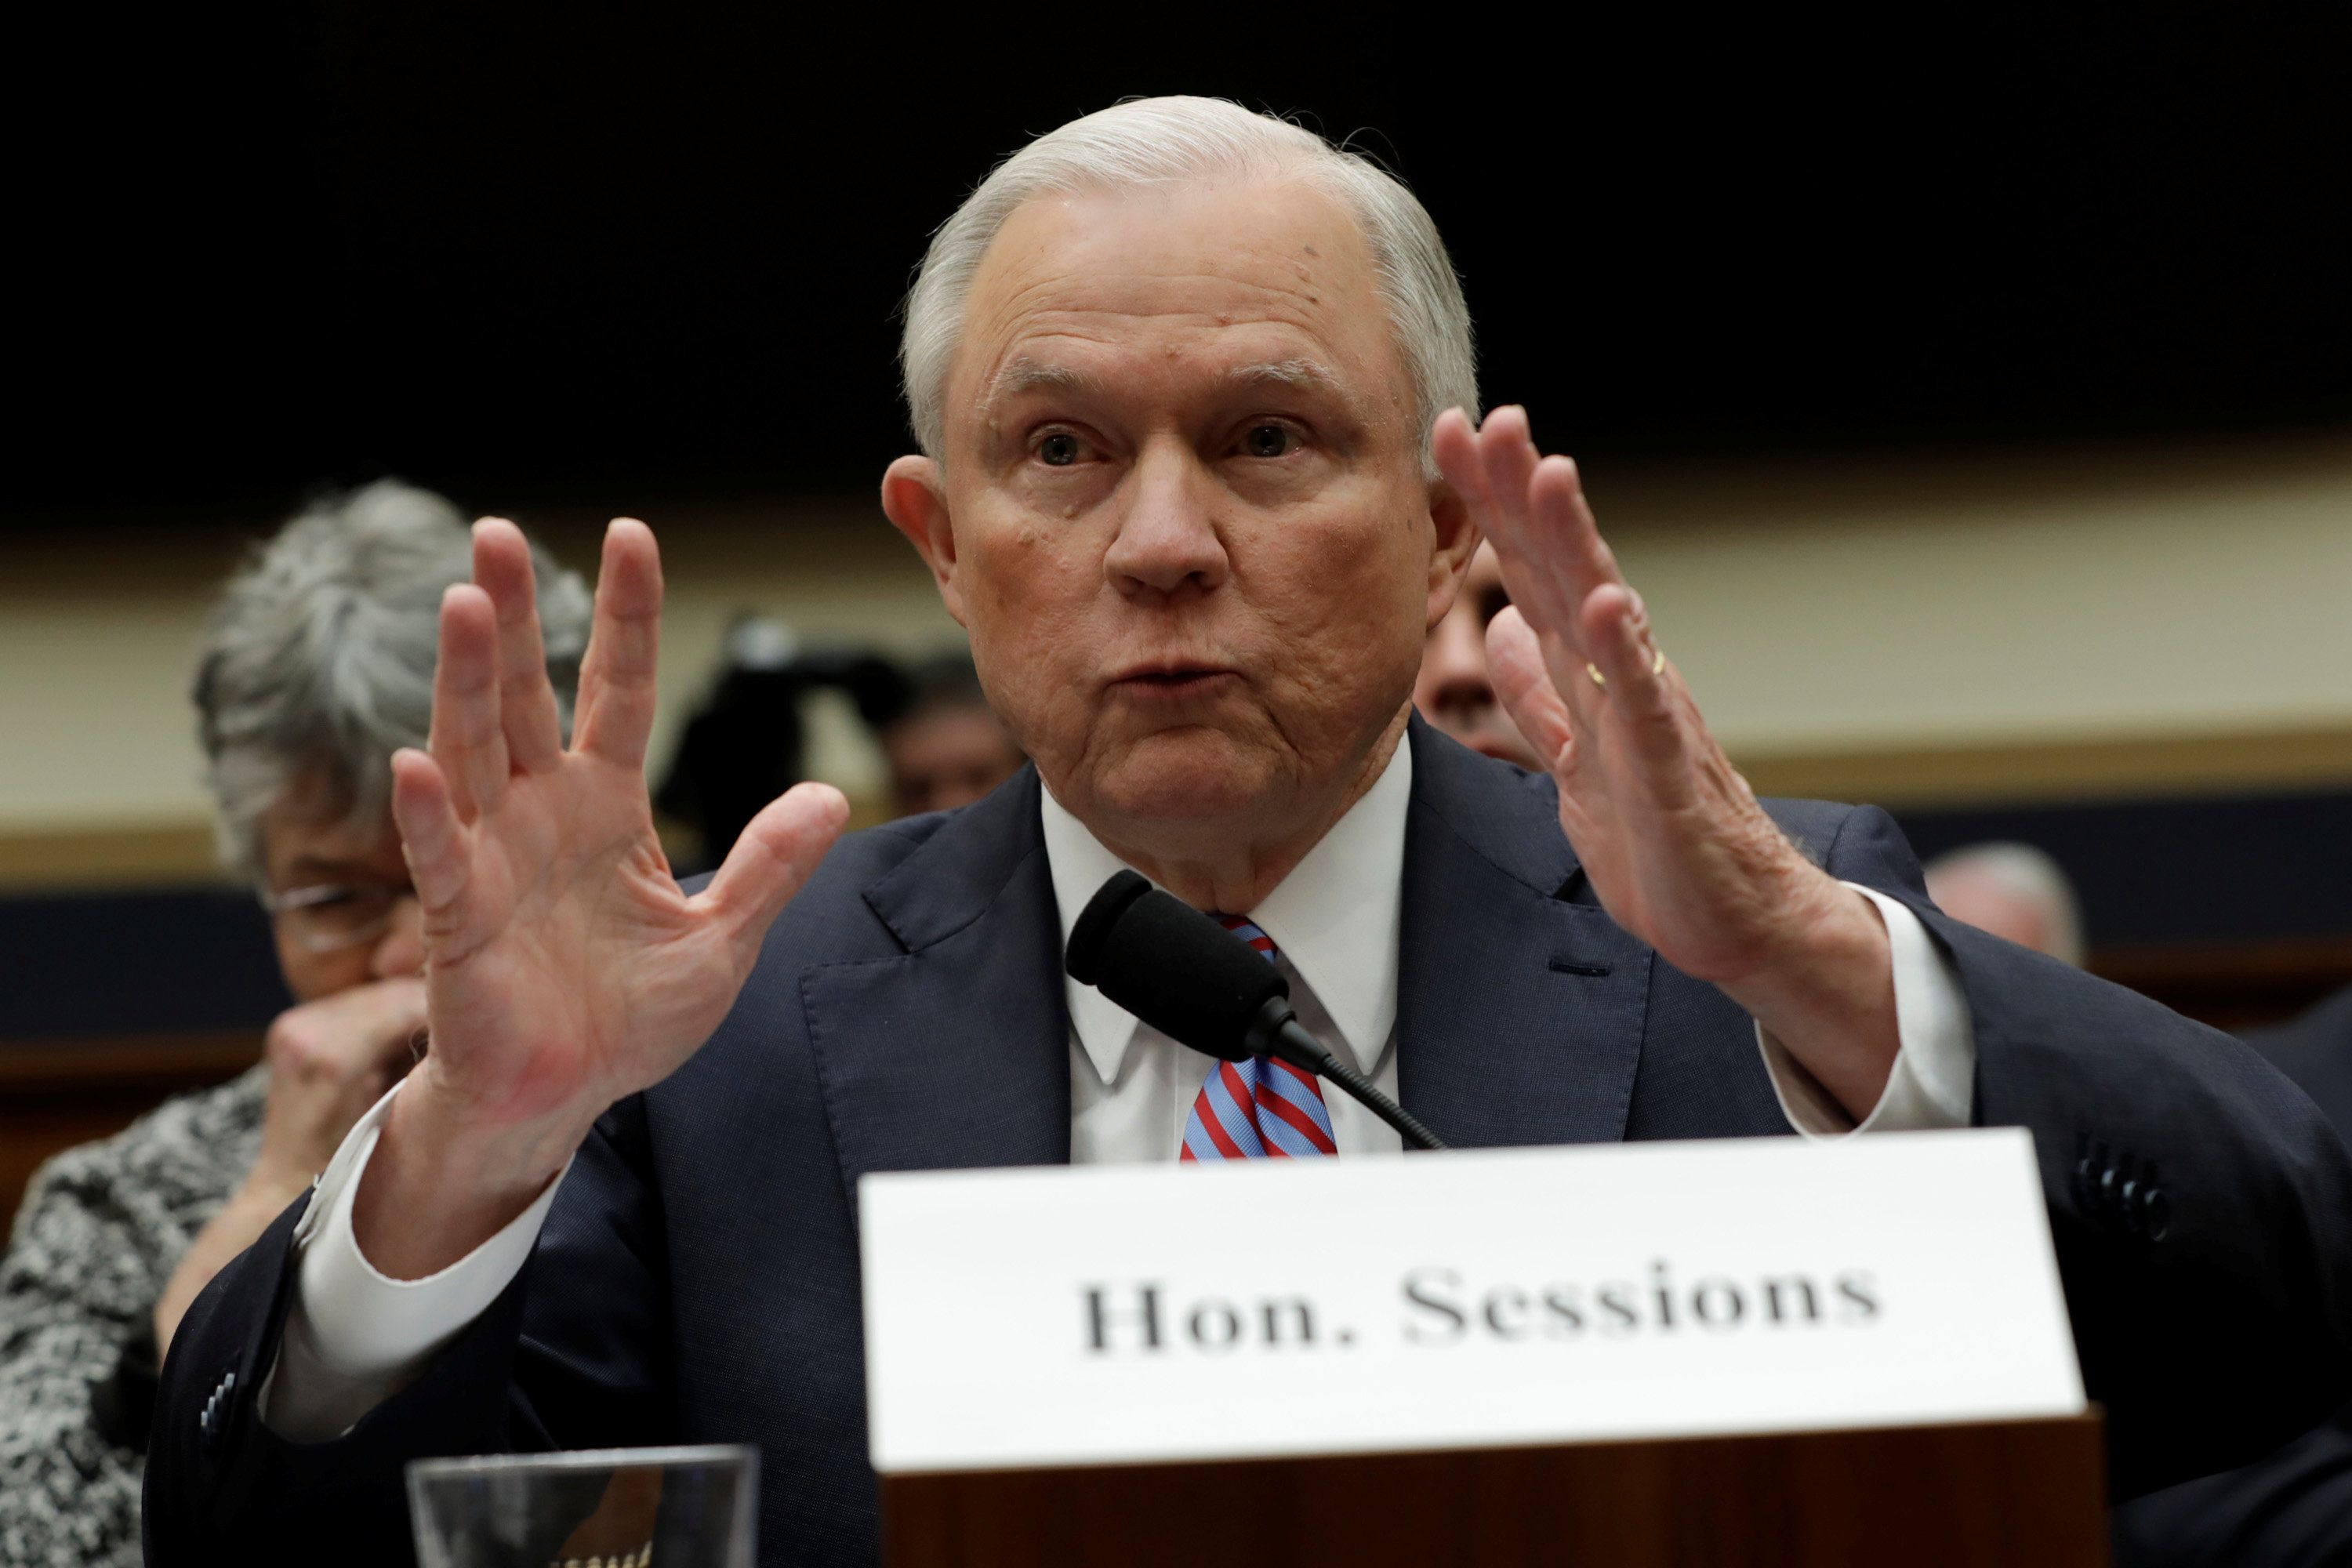 Sources Reportedly Contradict Sessions Testimony That He Opposed Russia Meeting During Campaign